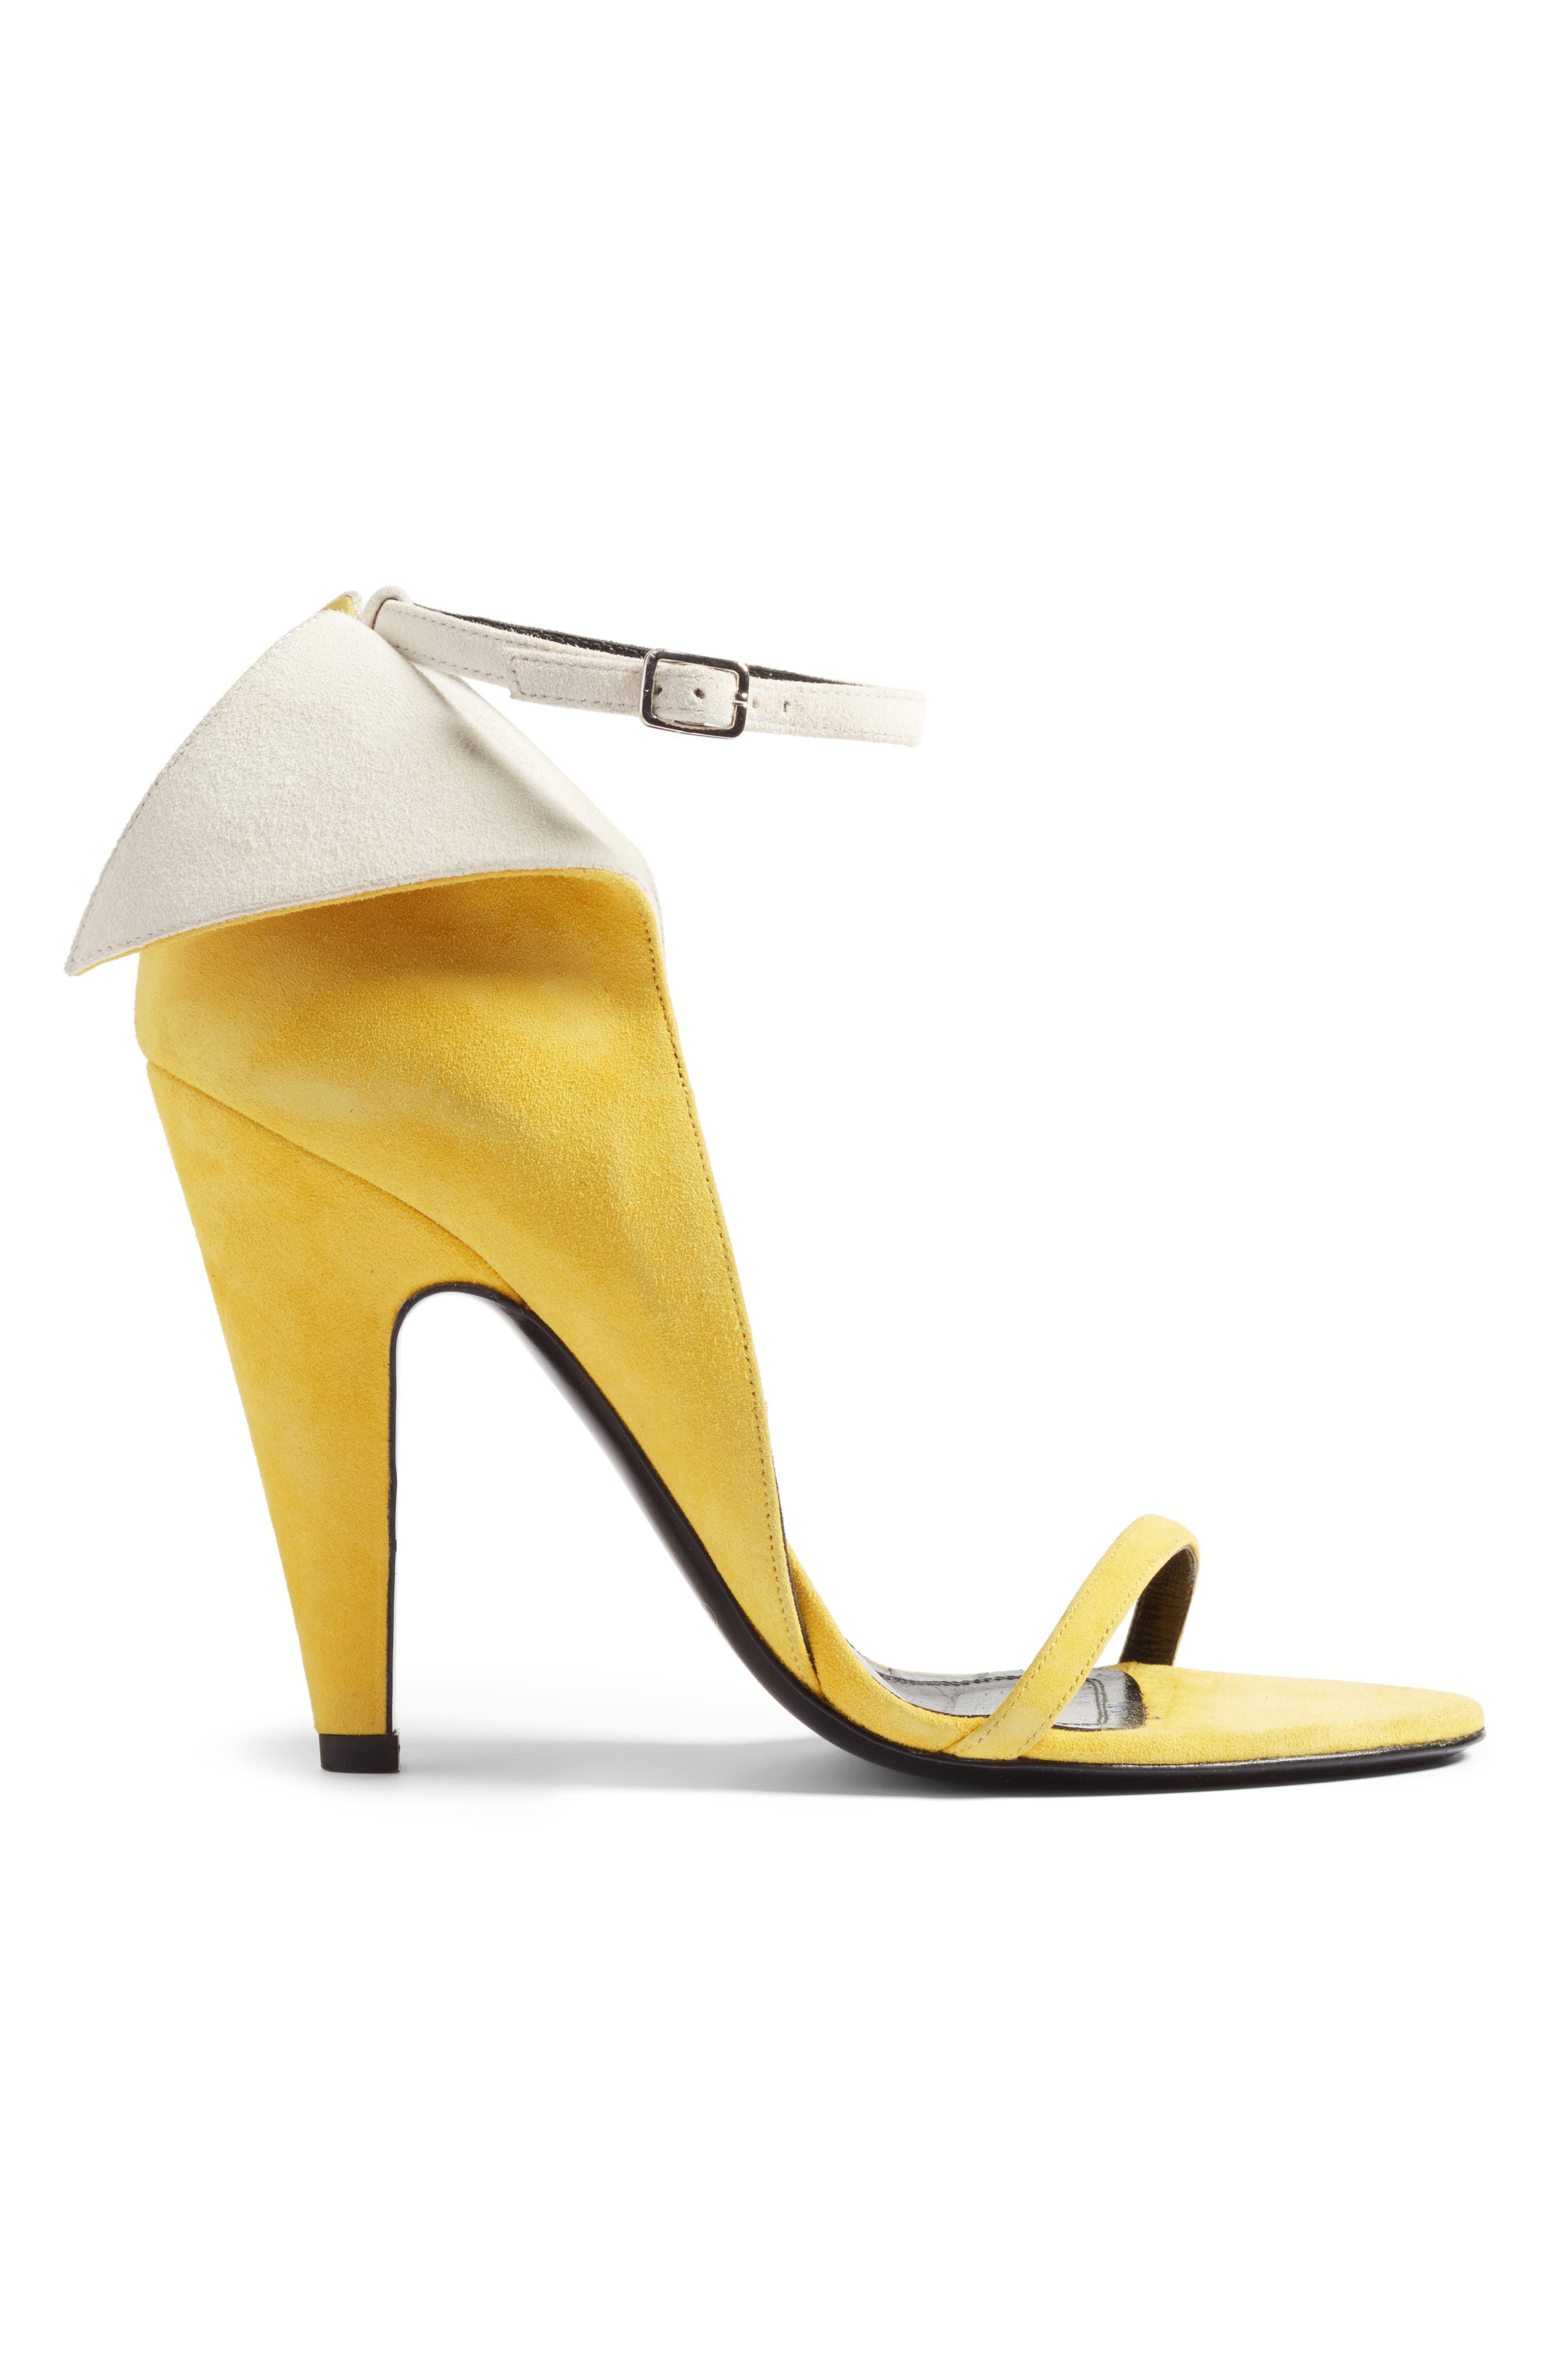 Alternate Image 3  - CALVIN KLEIN 205W39NYC Cammy Sandal (Women)